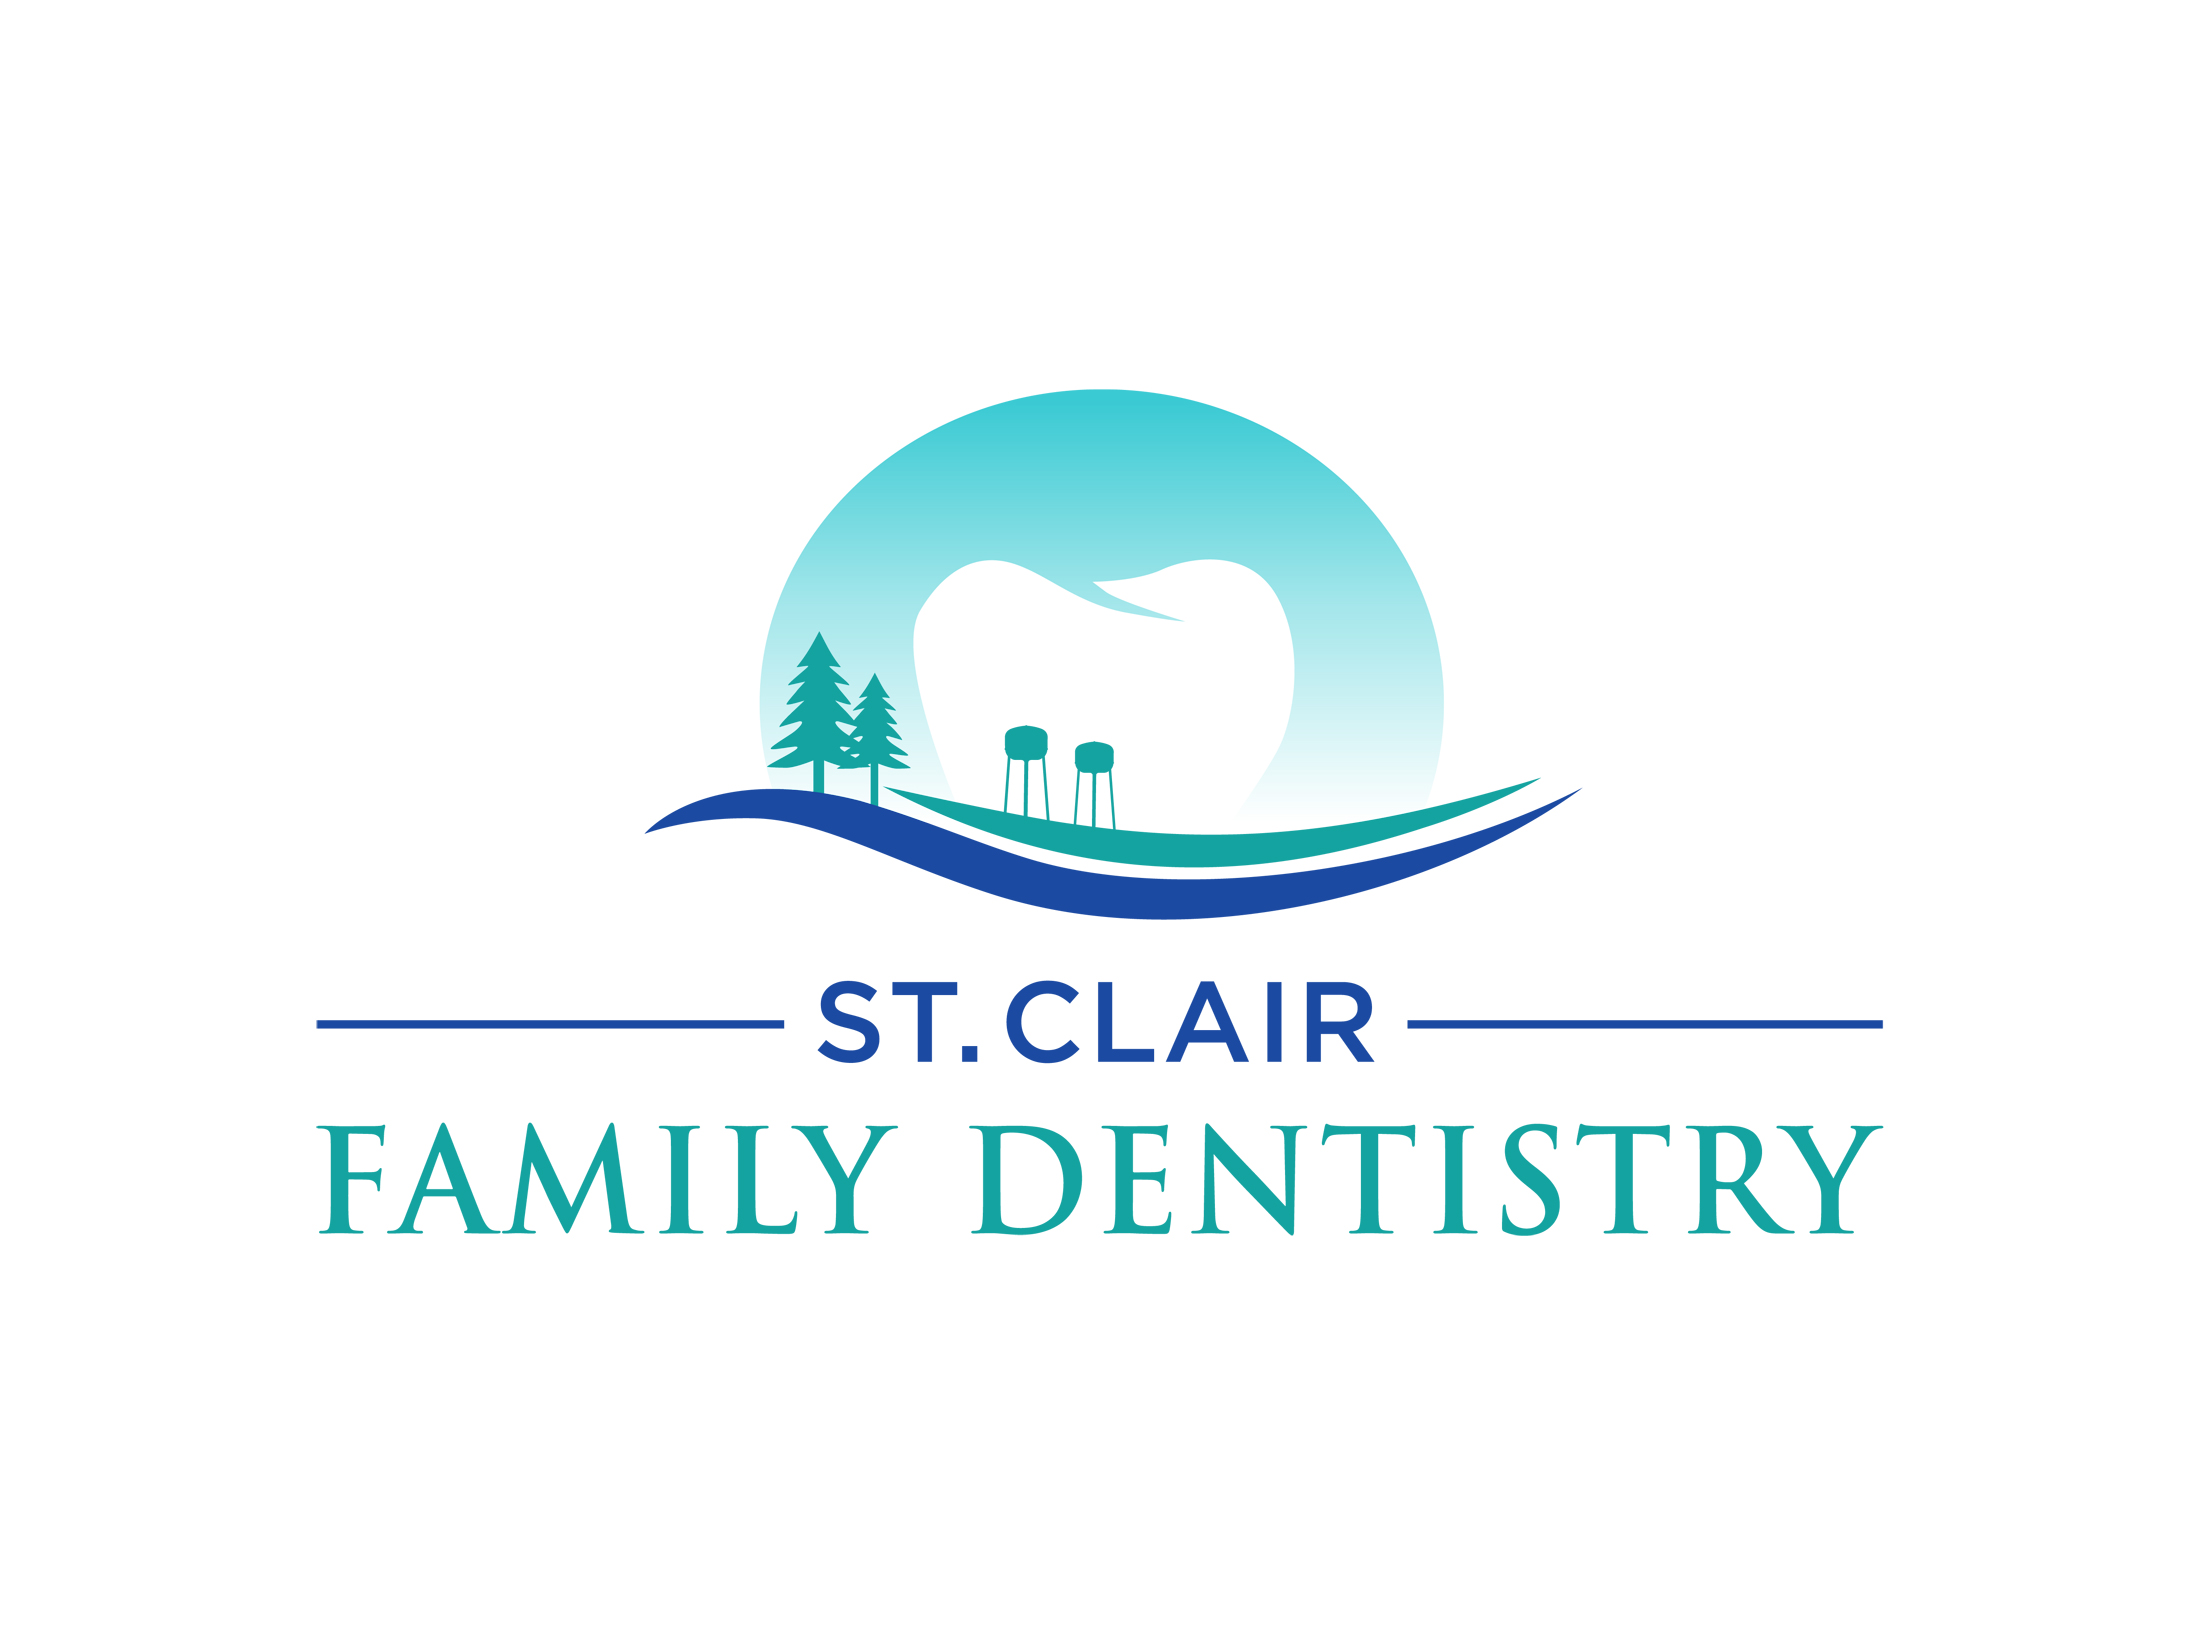 St. Clair Family Dentistry